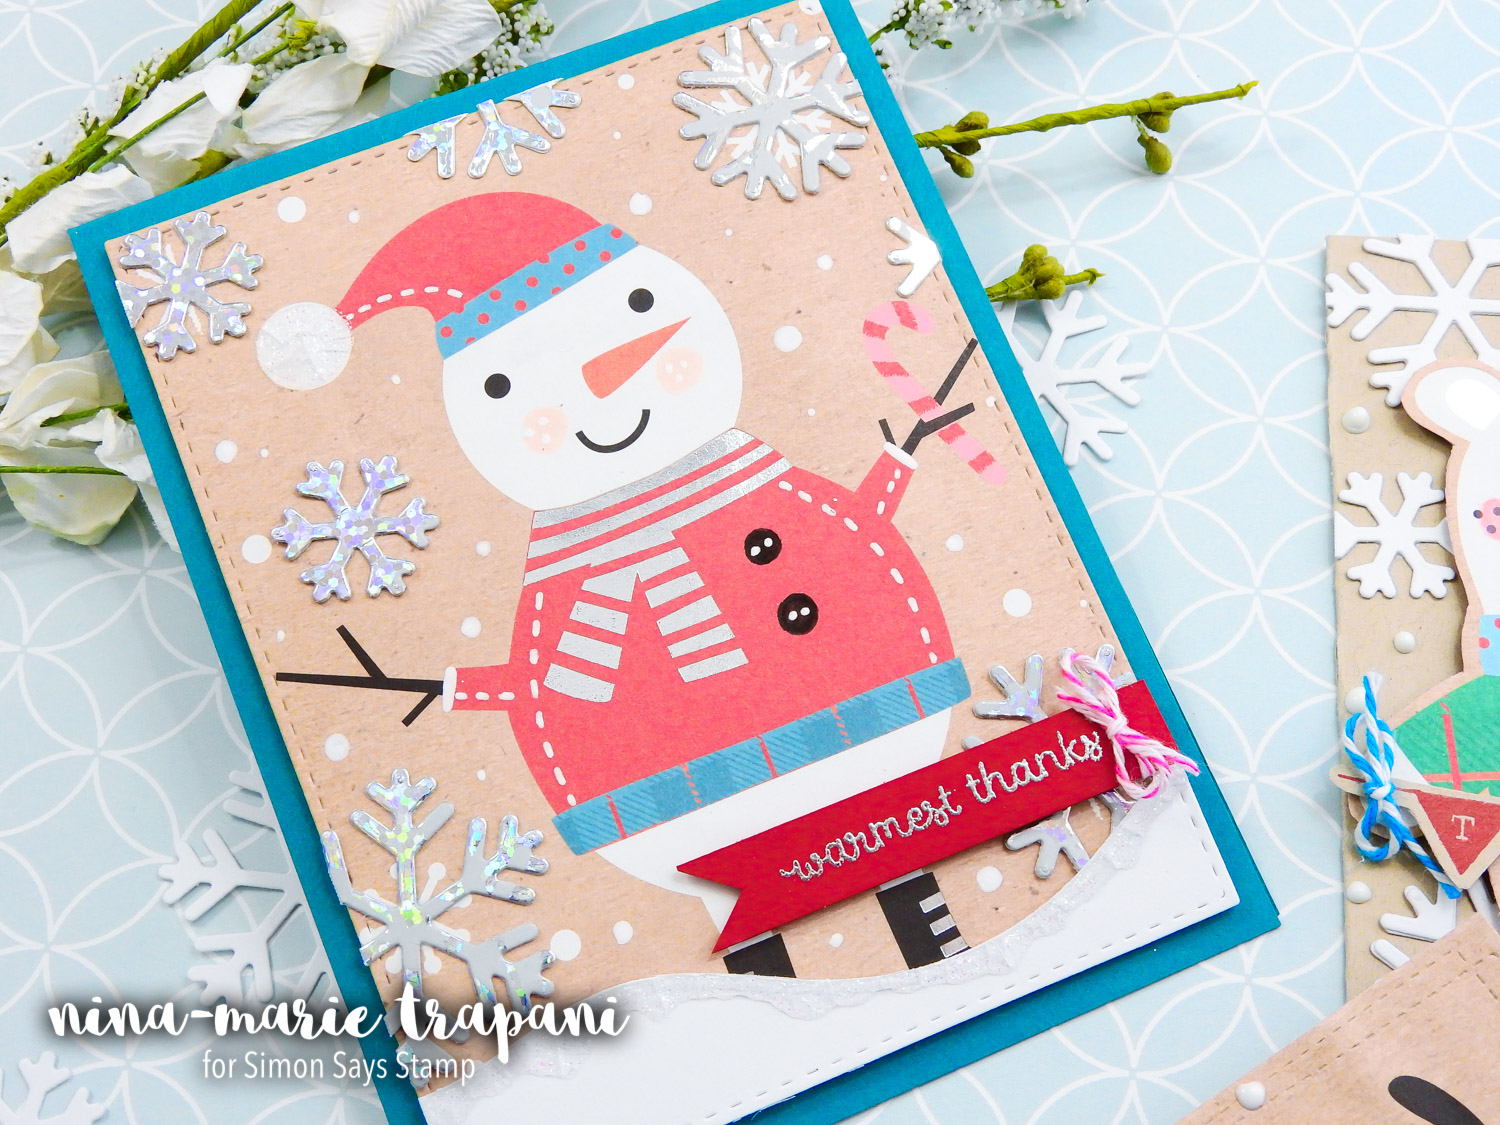 Studio Monday with Nina-Marie: Re-using Gift Wrap for Cards!